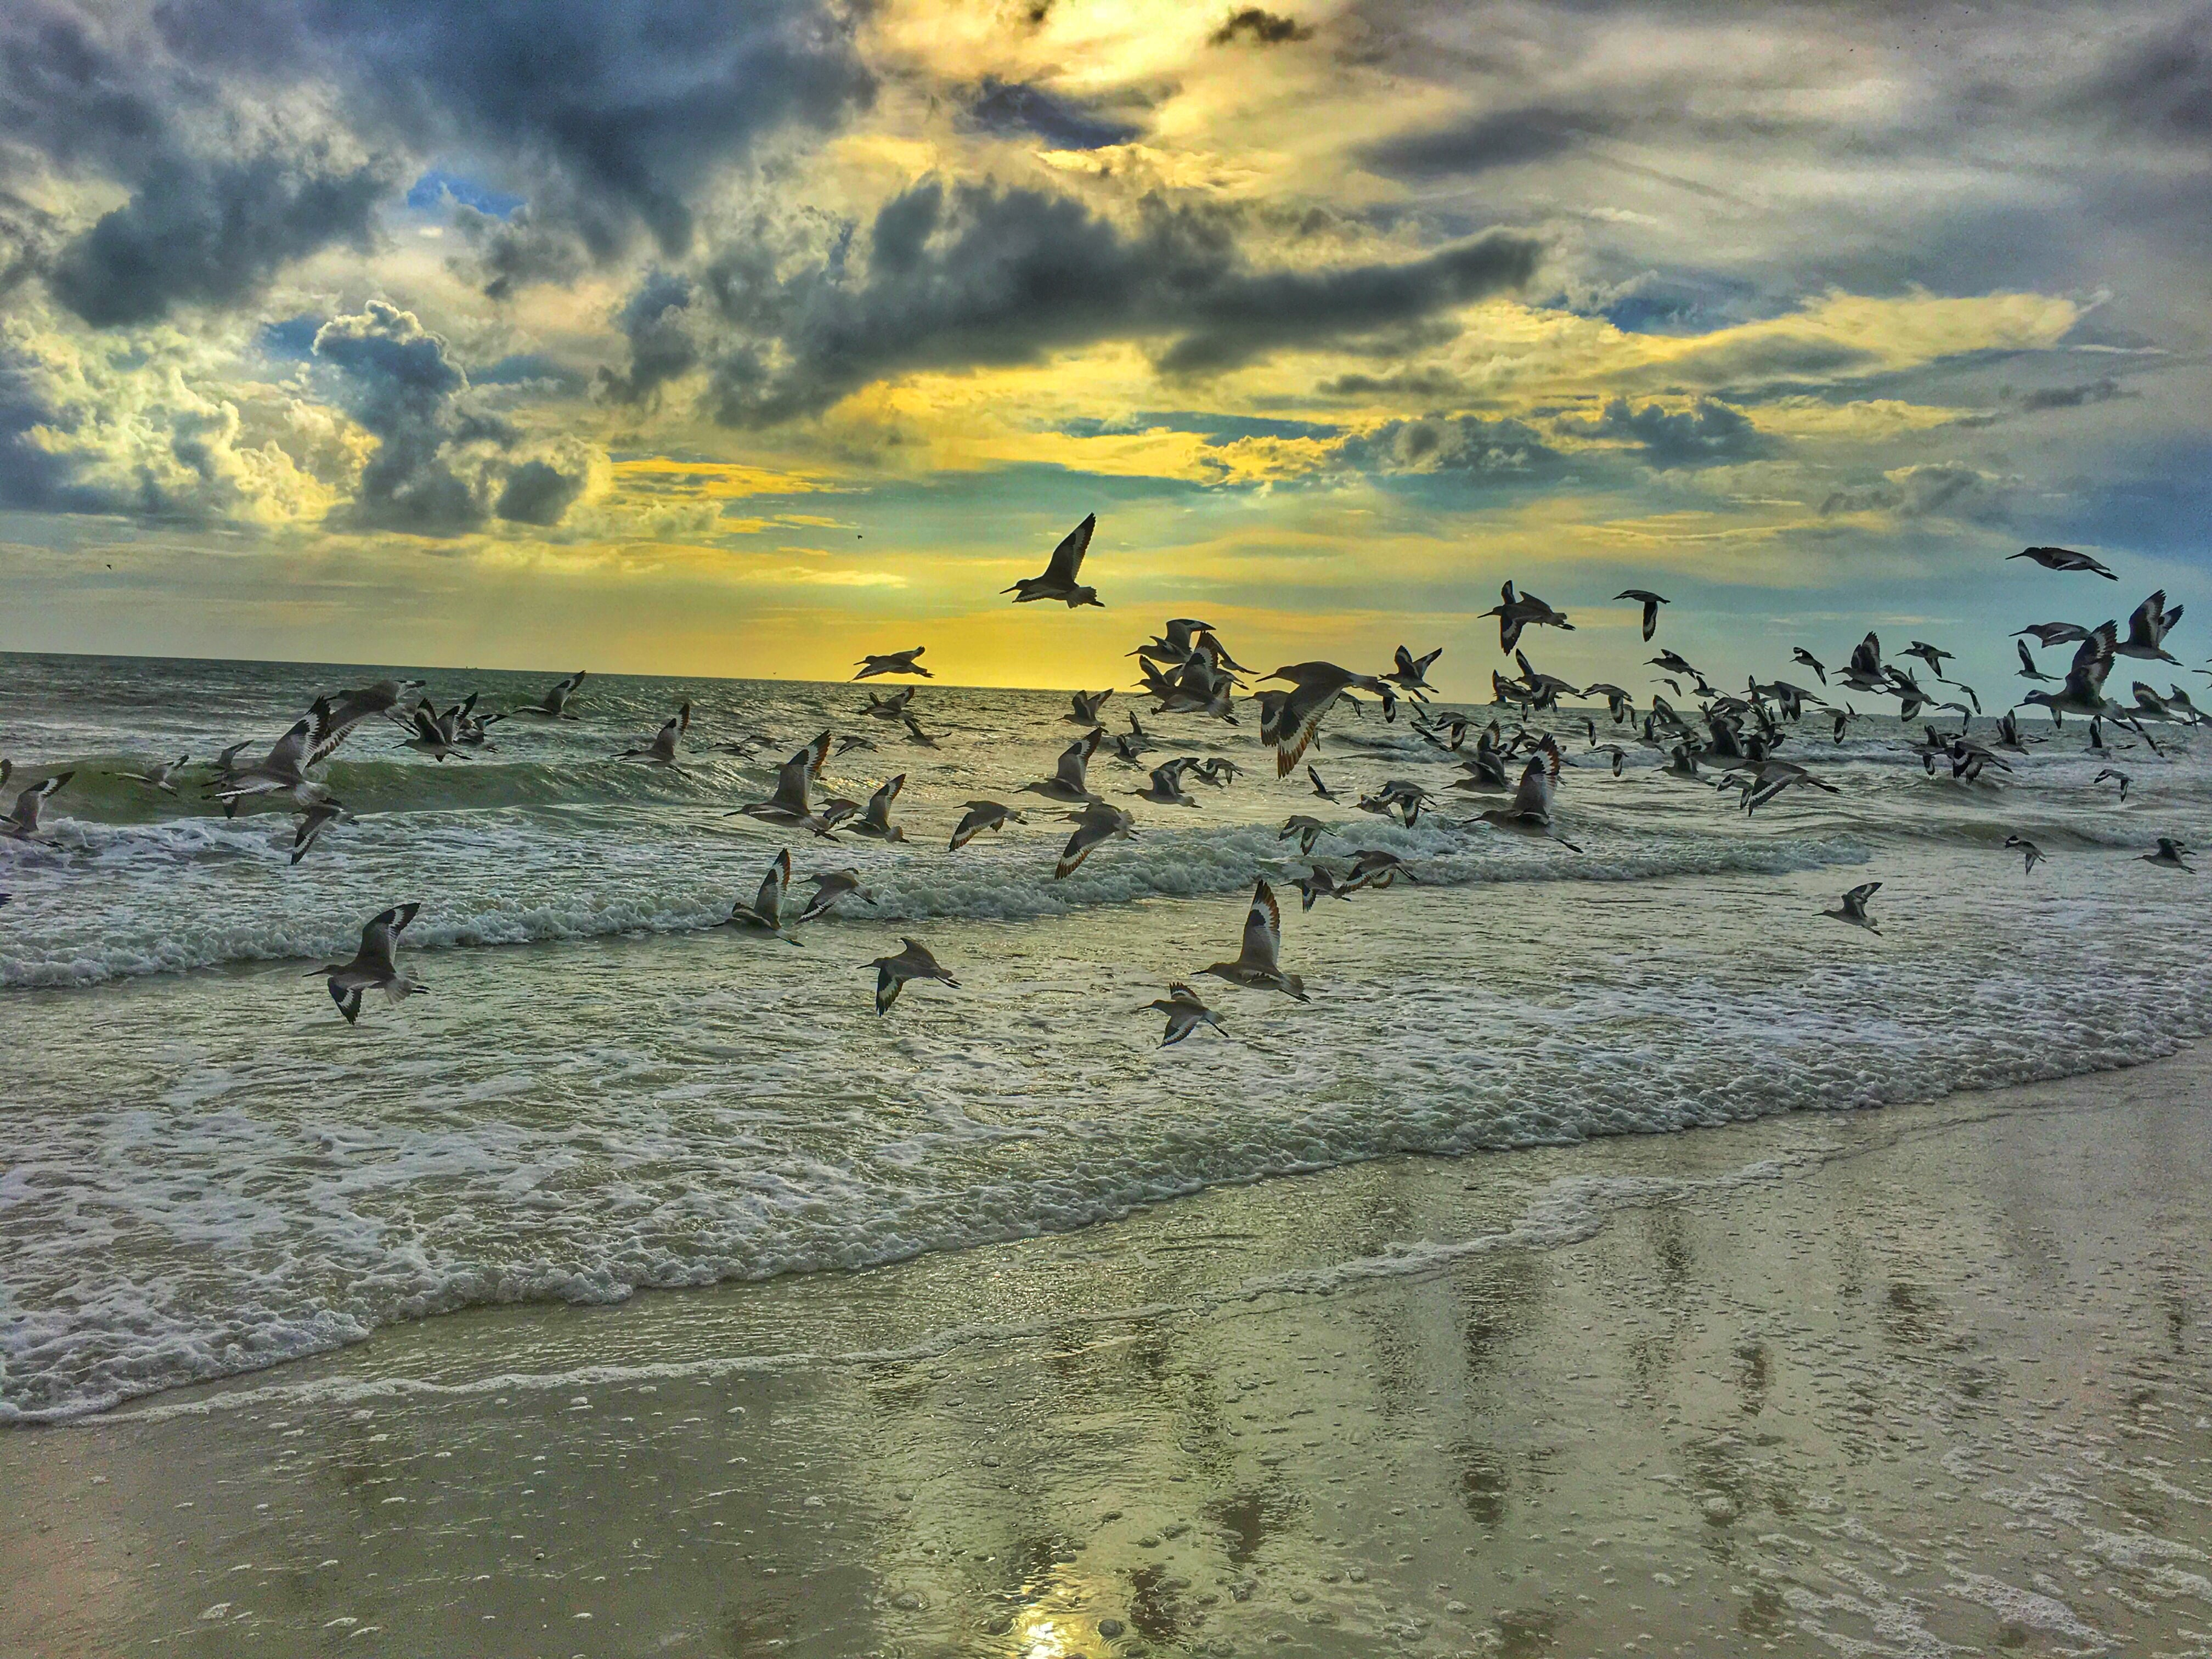 pigeons flying on seashore